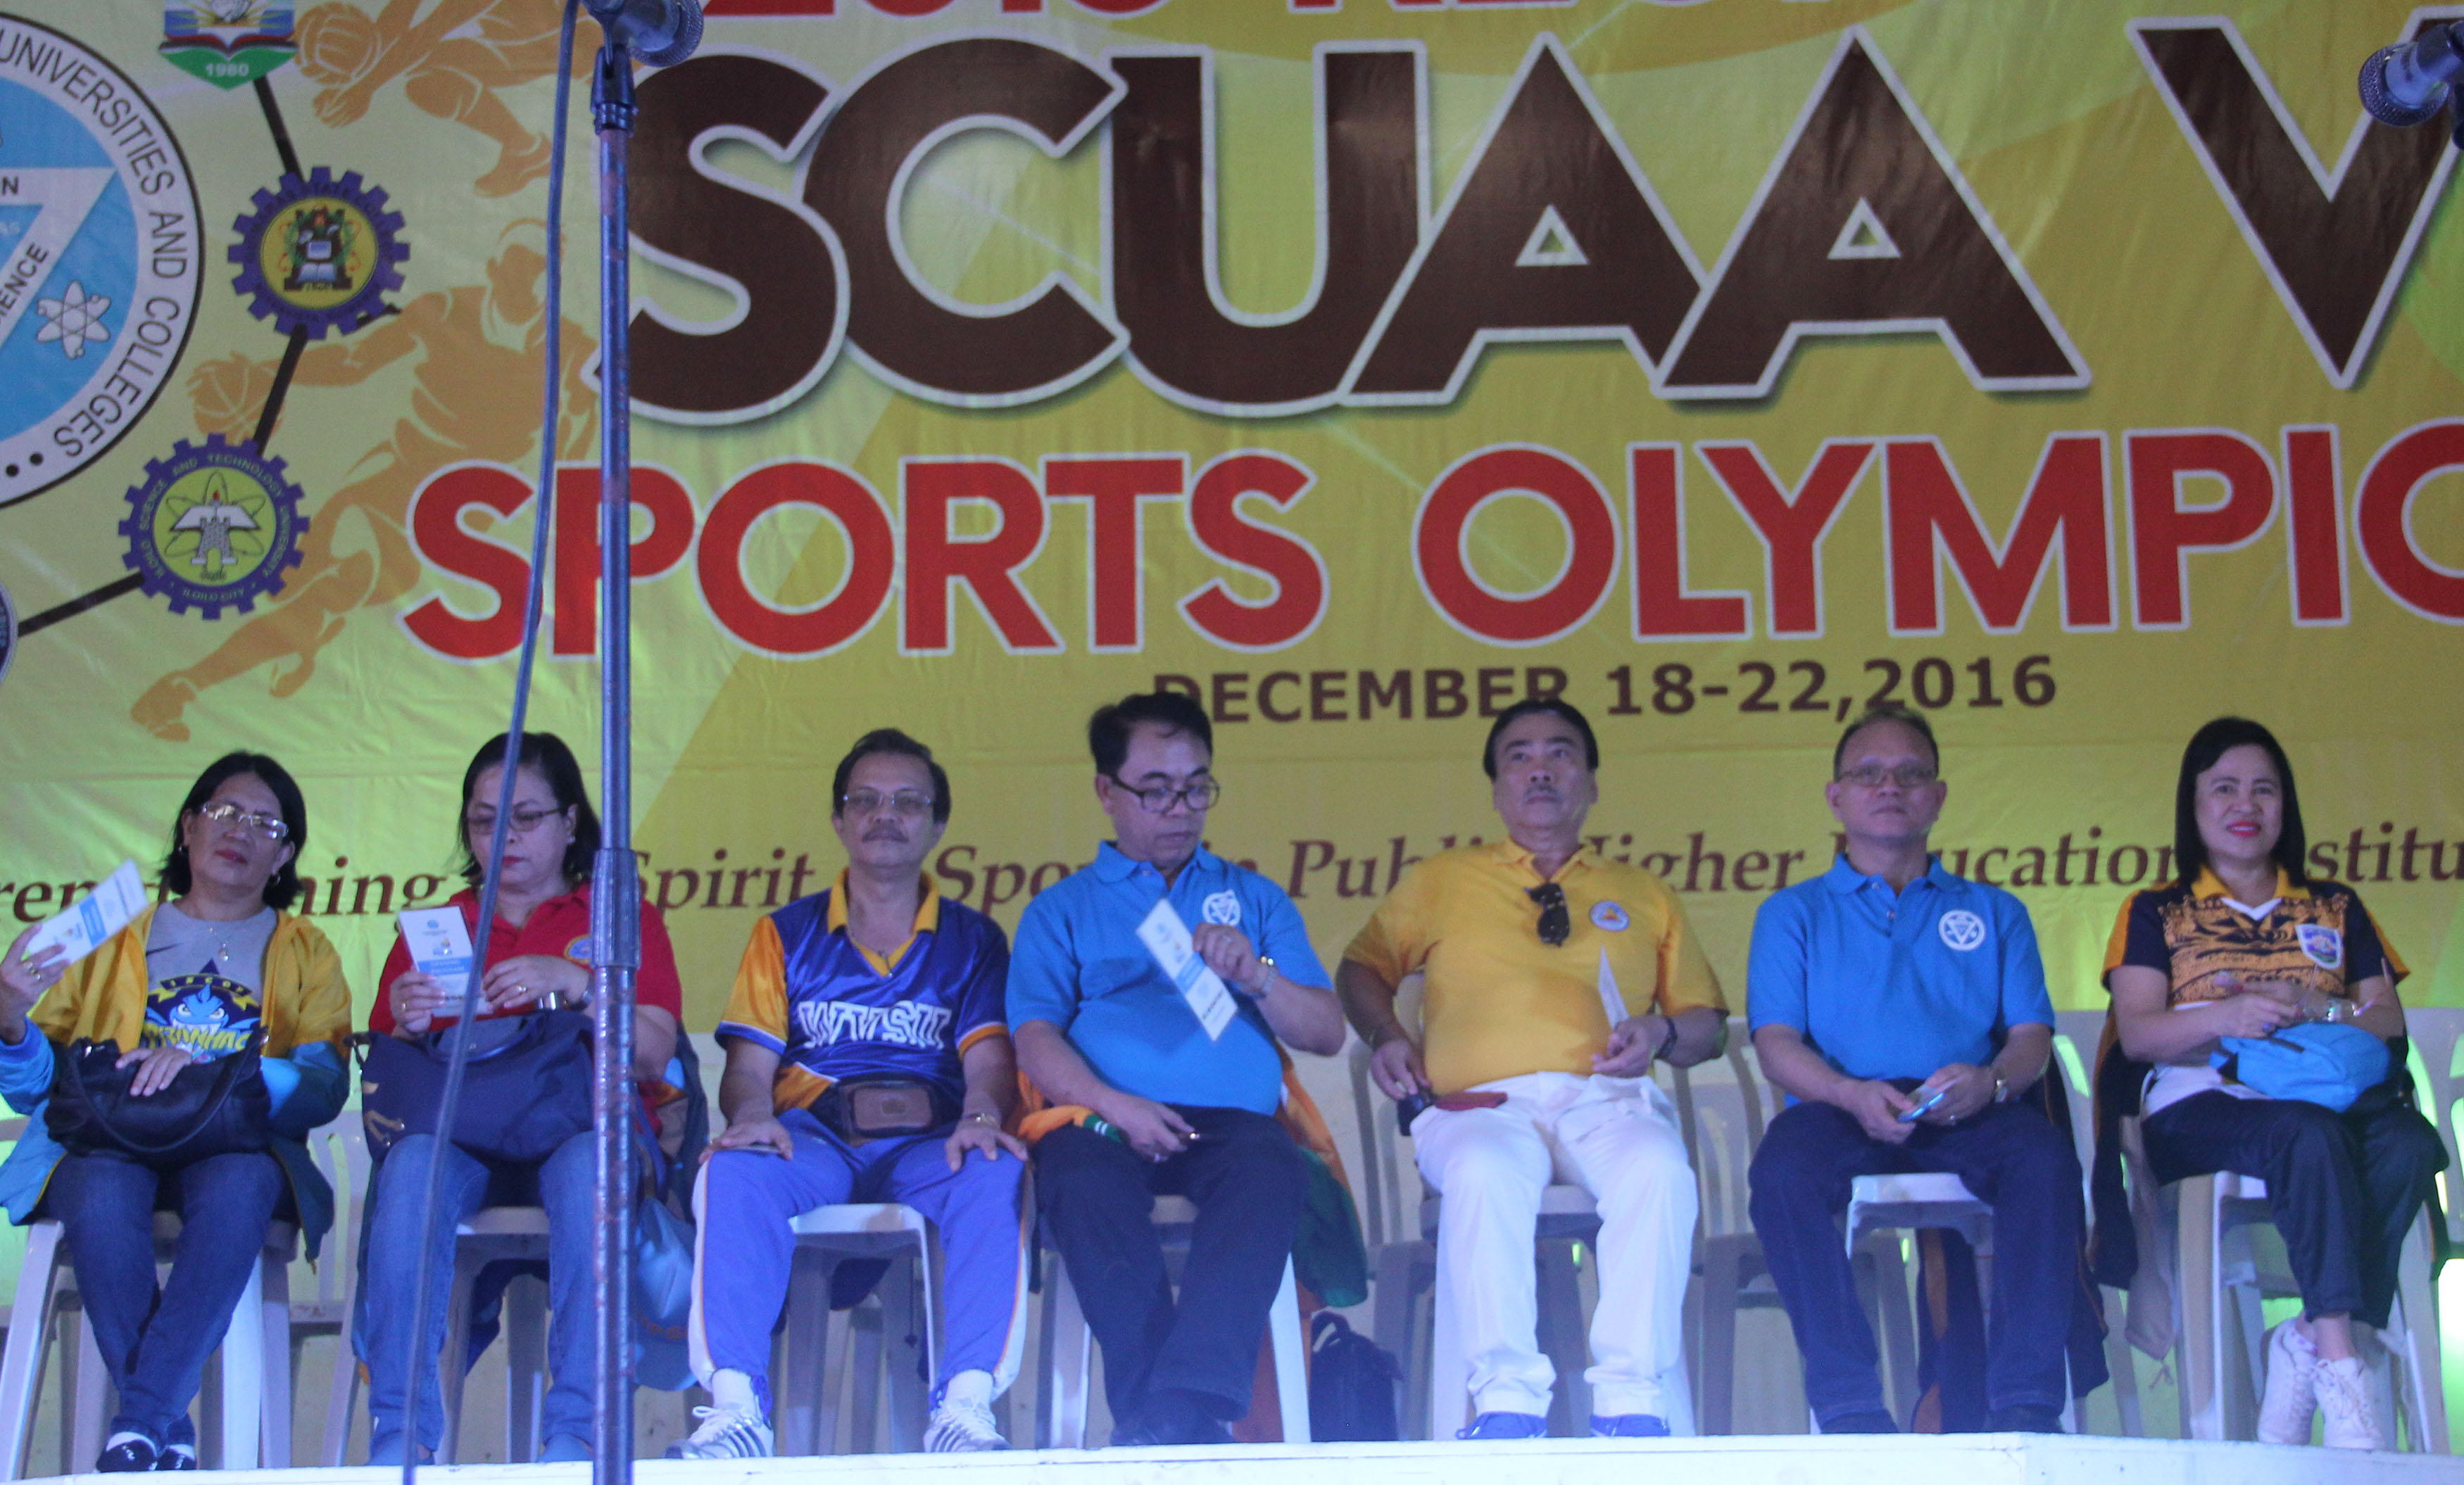 The Philippine Association of State Universities and Colleges (PASUC) VI presidents at the opening program of SCUAA 2016. From left, Dr. Theresa Palmares-Nothern iloilo Polytechnic State College, Dr. Percy Perez, tate College of Fisherires, Dr. Luis T. Sorolla- West Visayas State University, Dr. Danilo E. Abayon, Aklan State University, Dr. Victor E. Navarra, University of Antique, Dr. Raul F. Muyong, Iloilo Science and Technology University, Dr. Editha C. Alfon-Capiz State university.